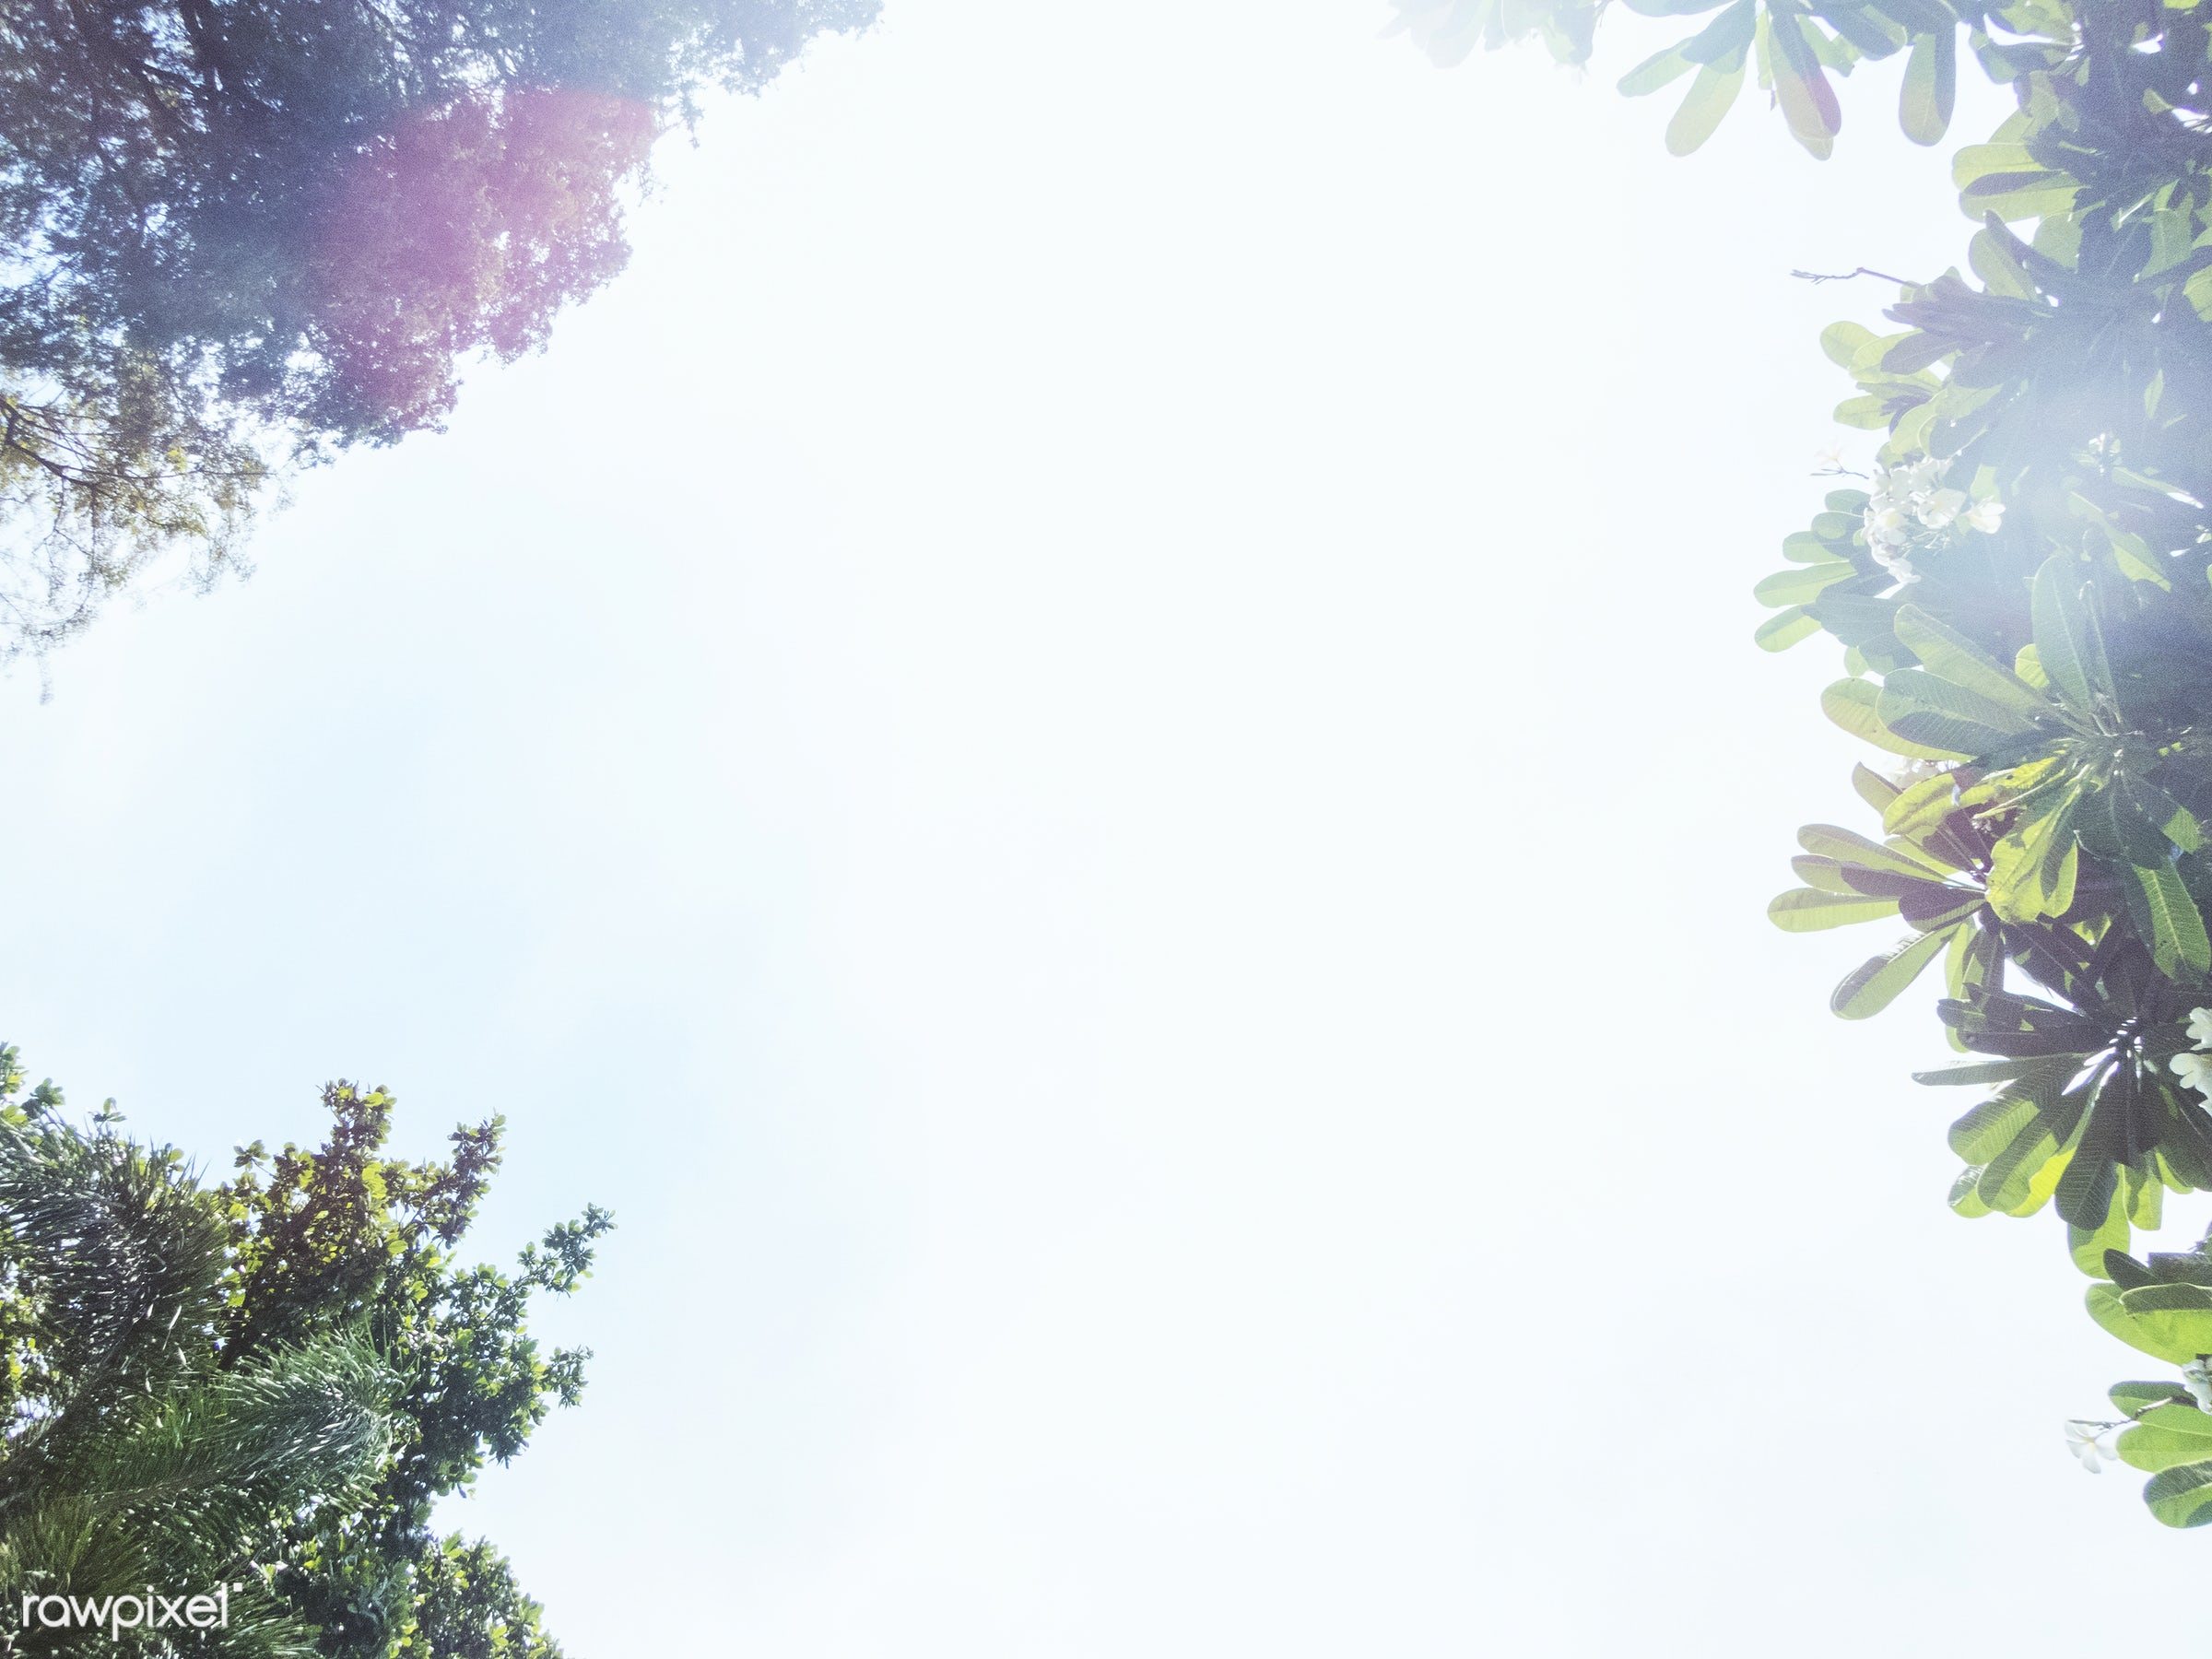 sky, summer, nature, sunny, palm tree, below, environment, environmental, low angle view, sumner, sunlight, tree